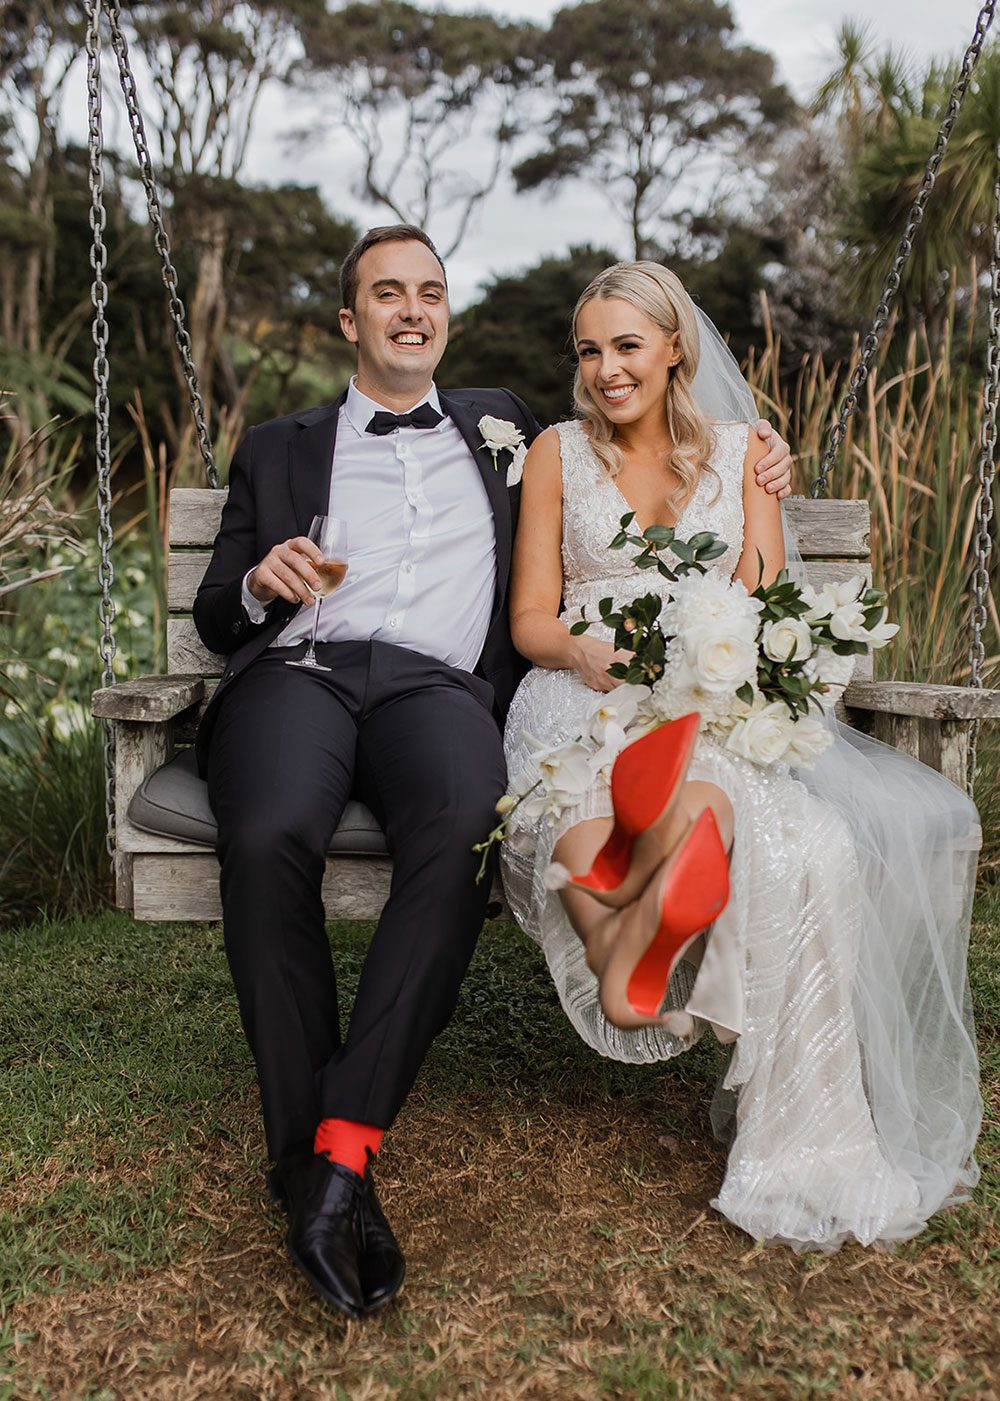 Bride wearing bespoke fitted V-neck gown in beaded lace with front split and sheer beaded overlay by Vinka bridal boutique NZ- sitting on chair with groom